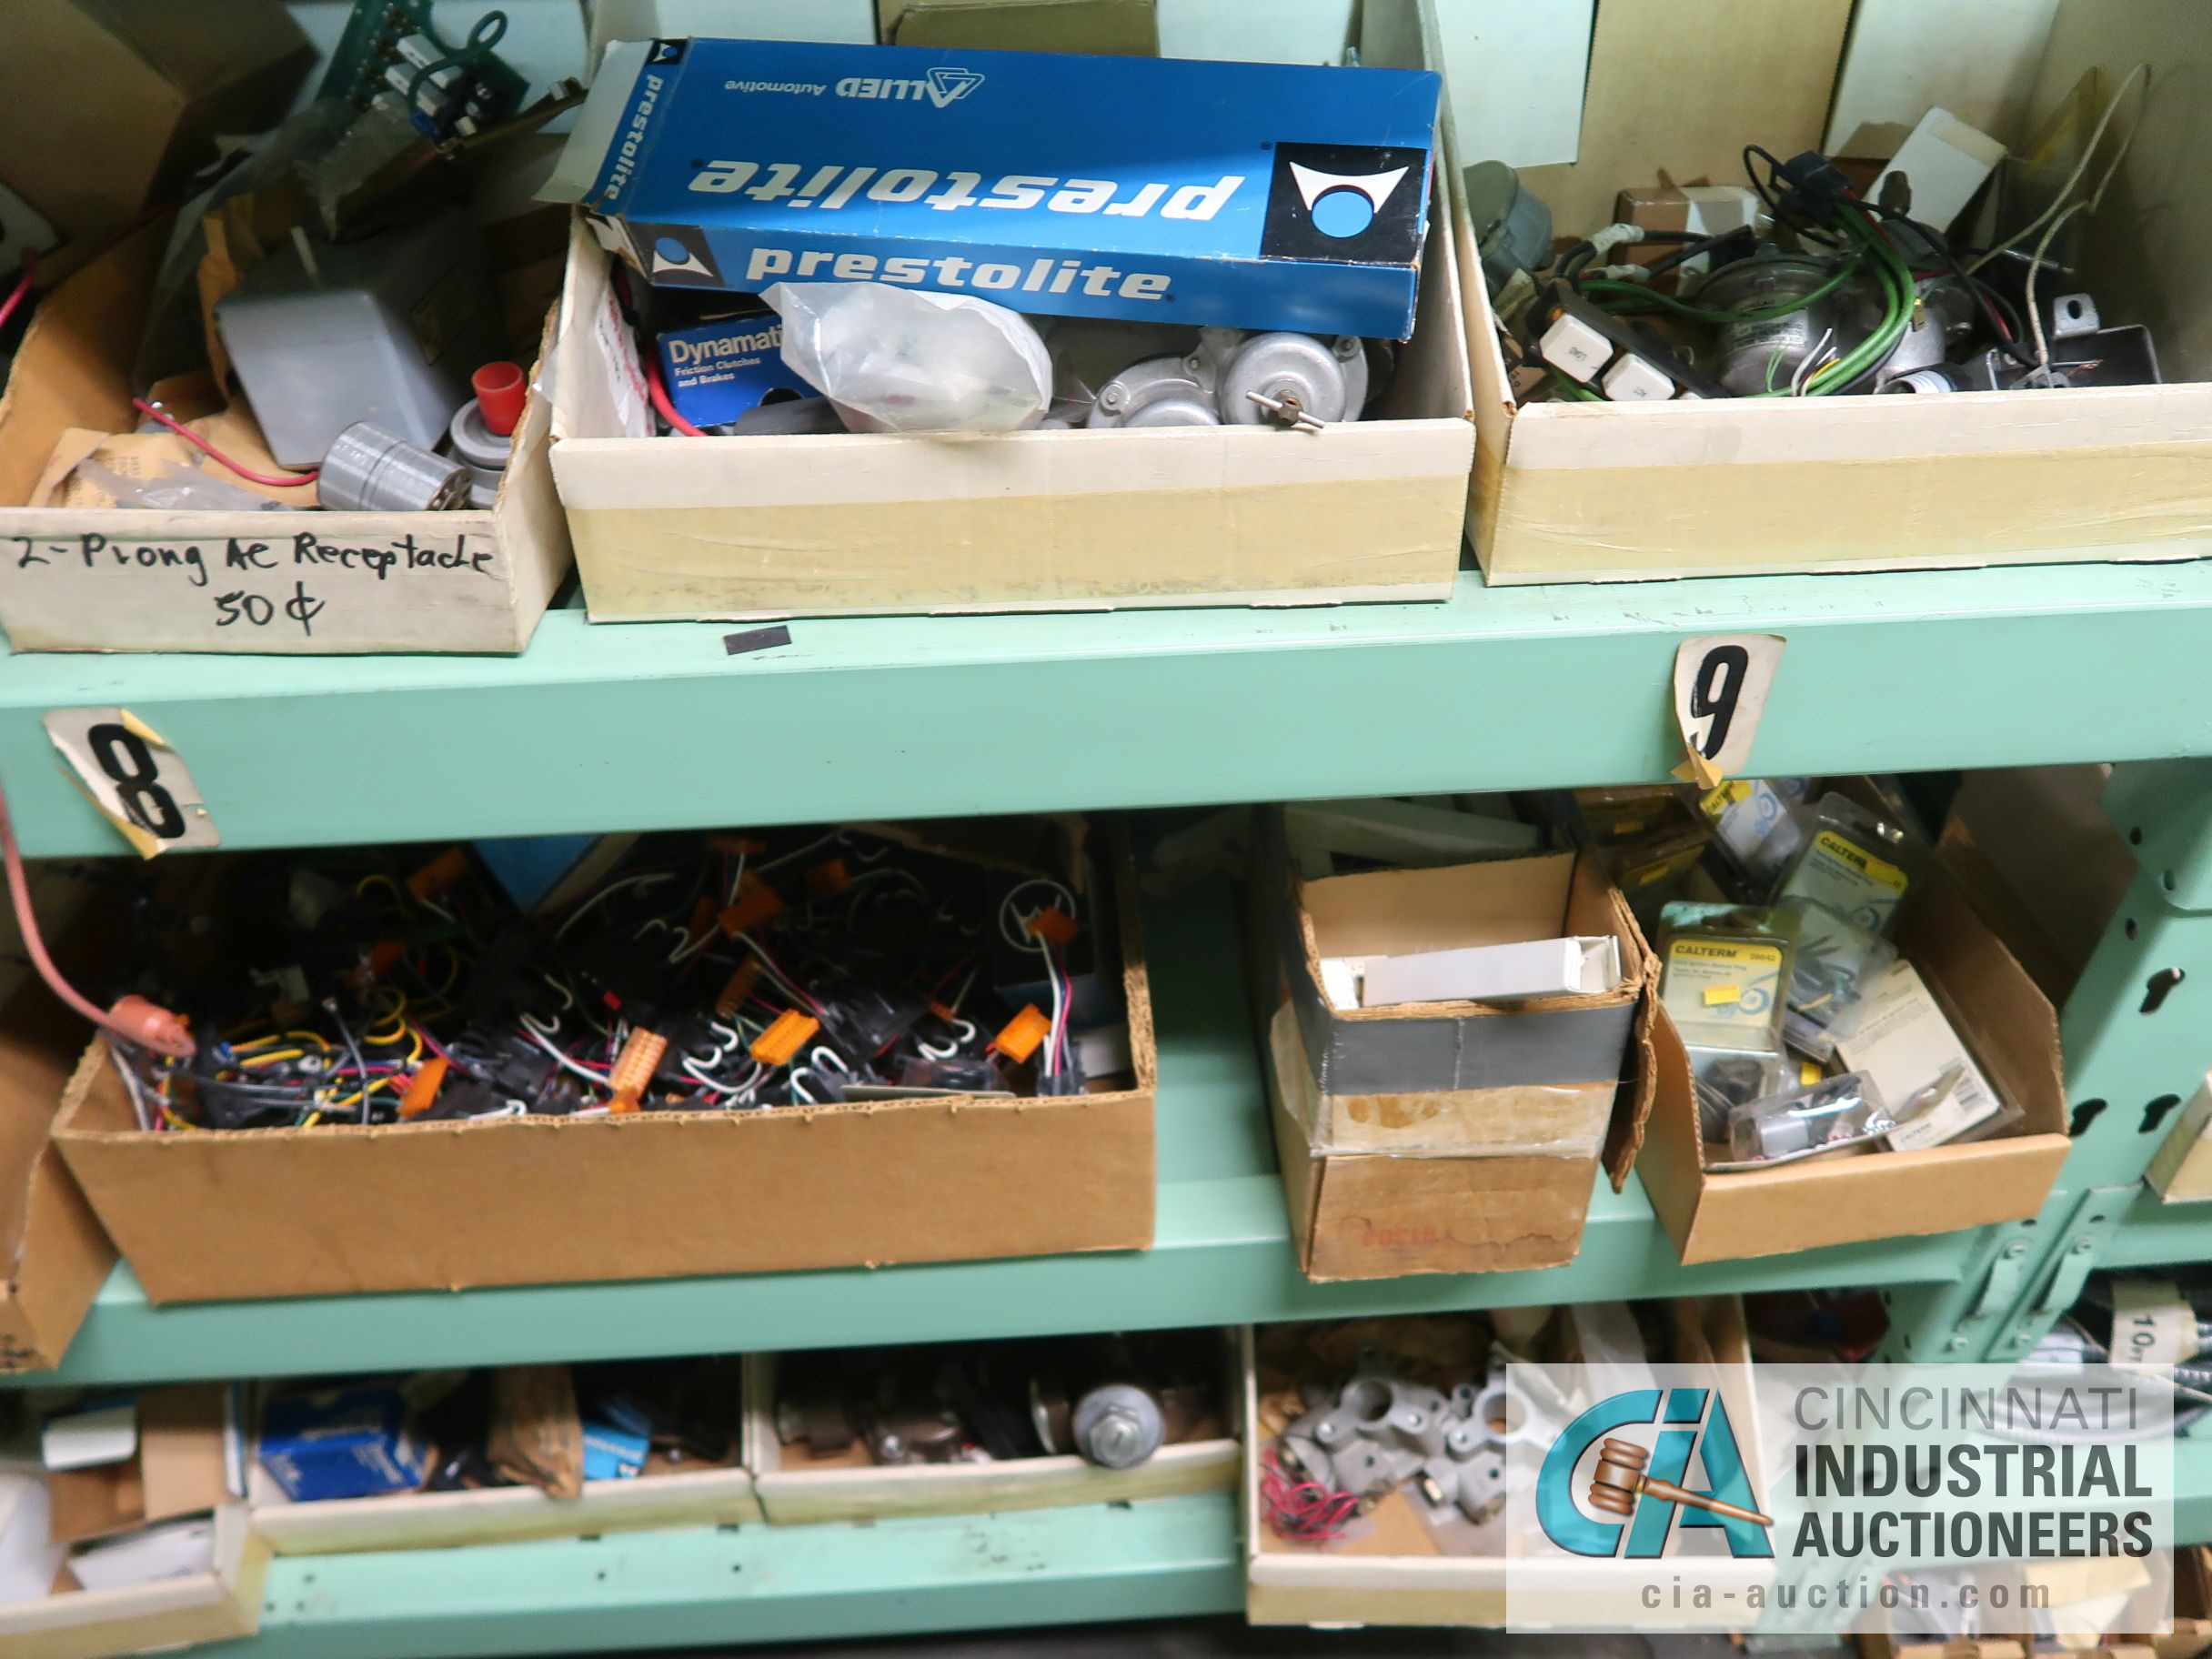 CONTENTS OF (5) RACKS INCLUDING MISCELLANEOUS AUTOMOTIVE PARTS, LIGHTS, FILTERS, ENGINE PARTS, RIMS, - Image 4 of 29